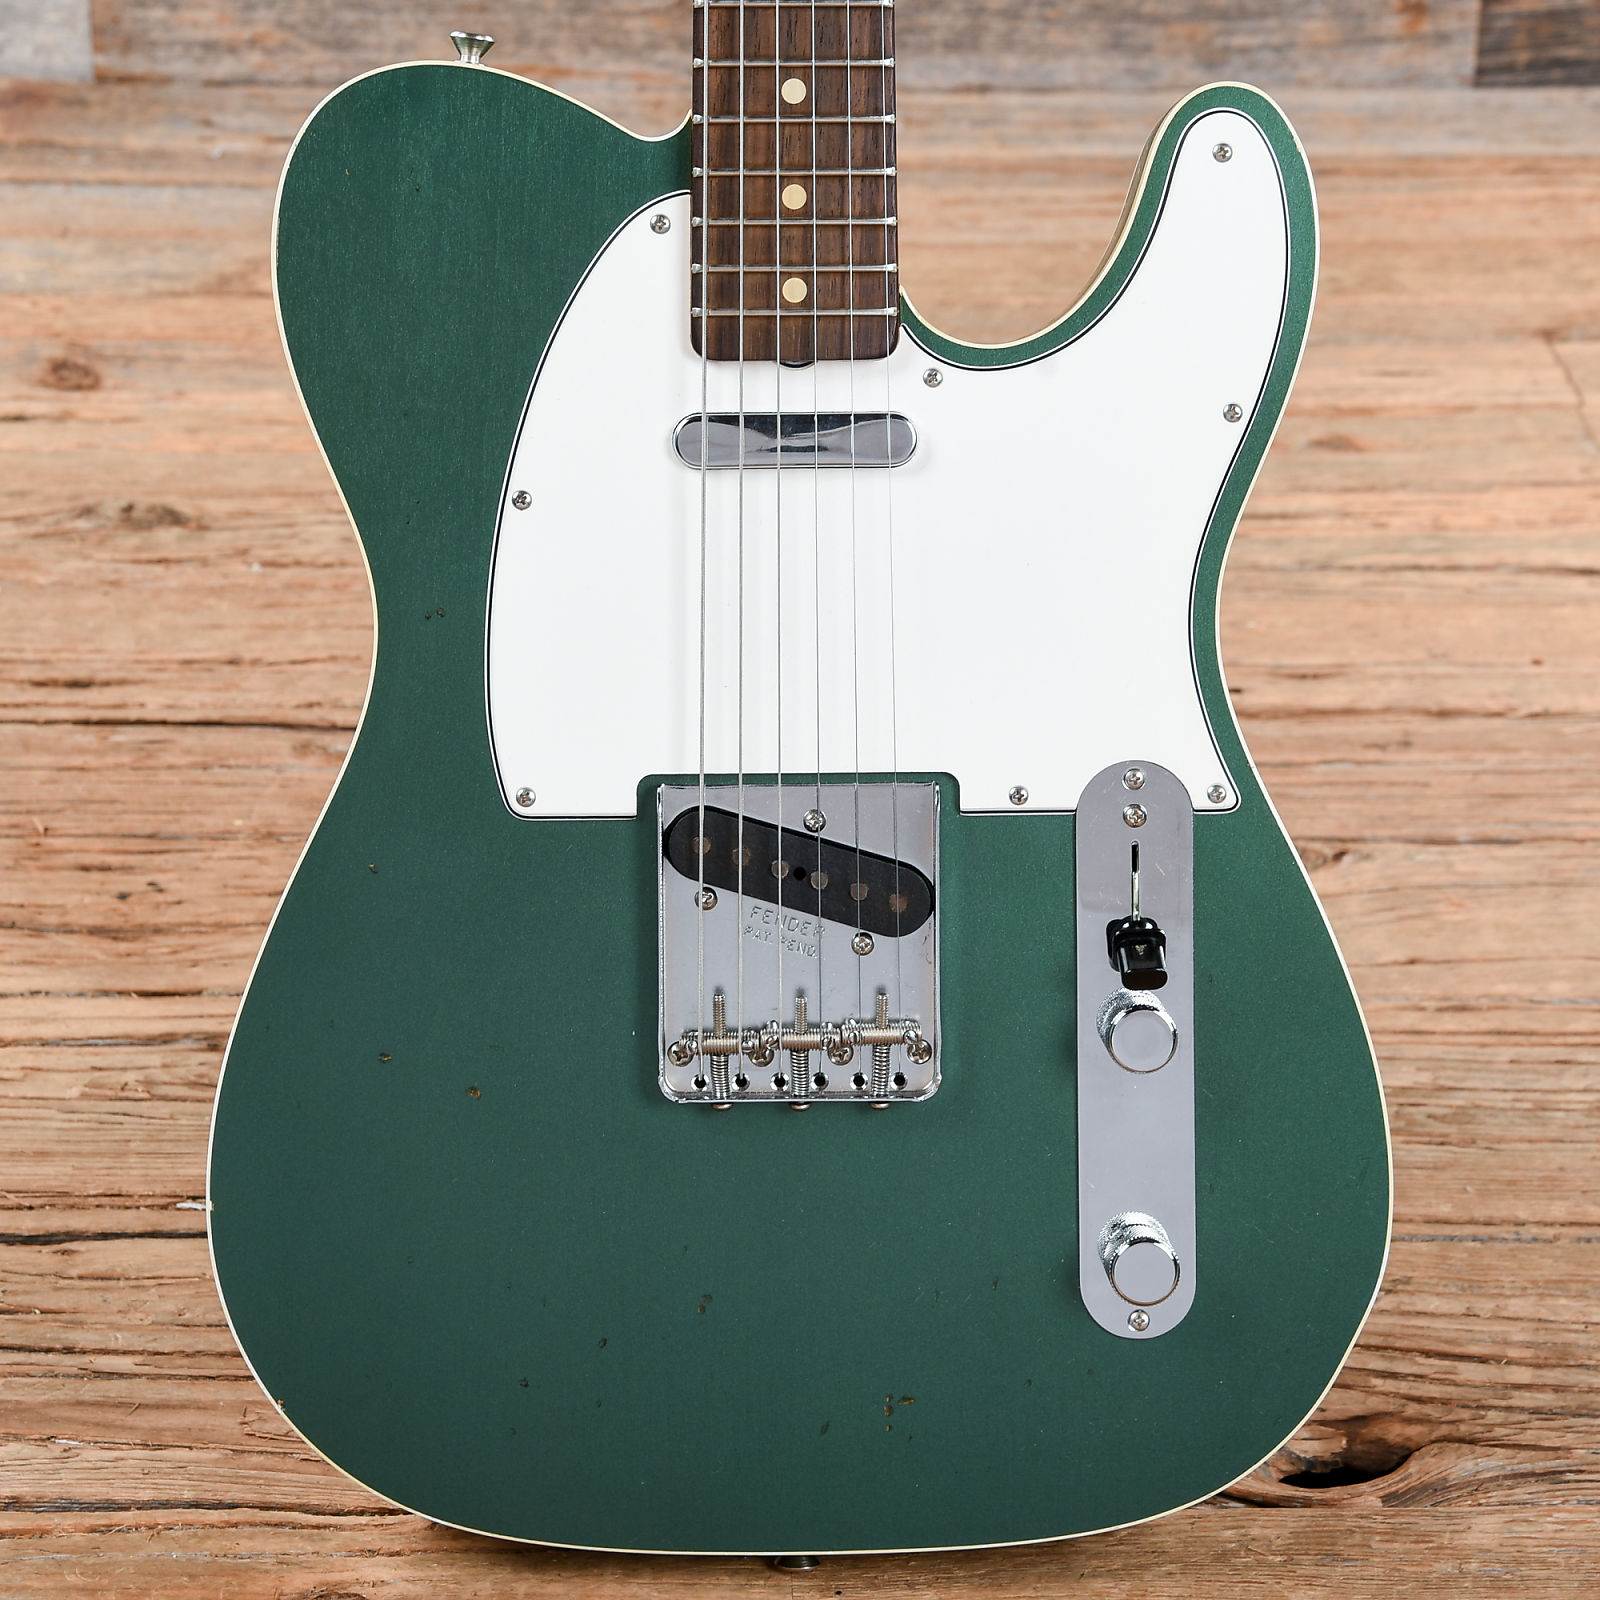 Fender Custom Shop 63 Telecaster Journeyman Relic